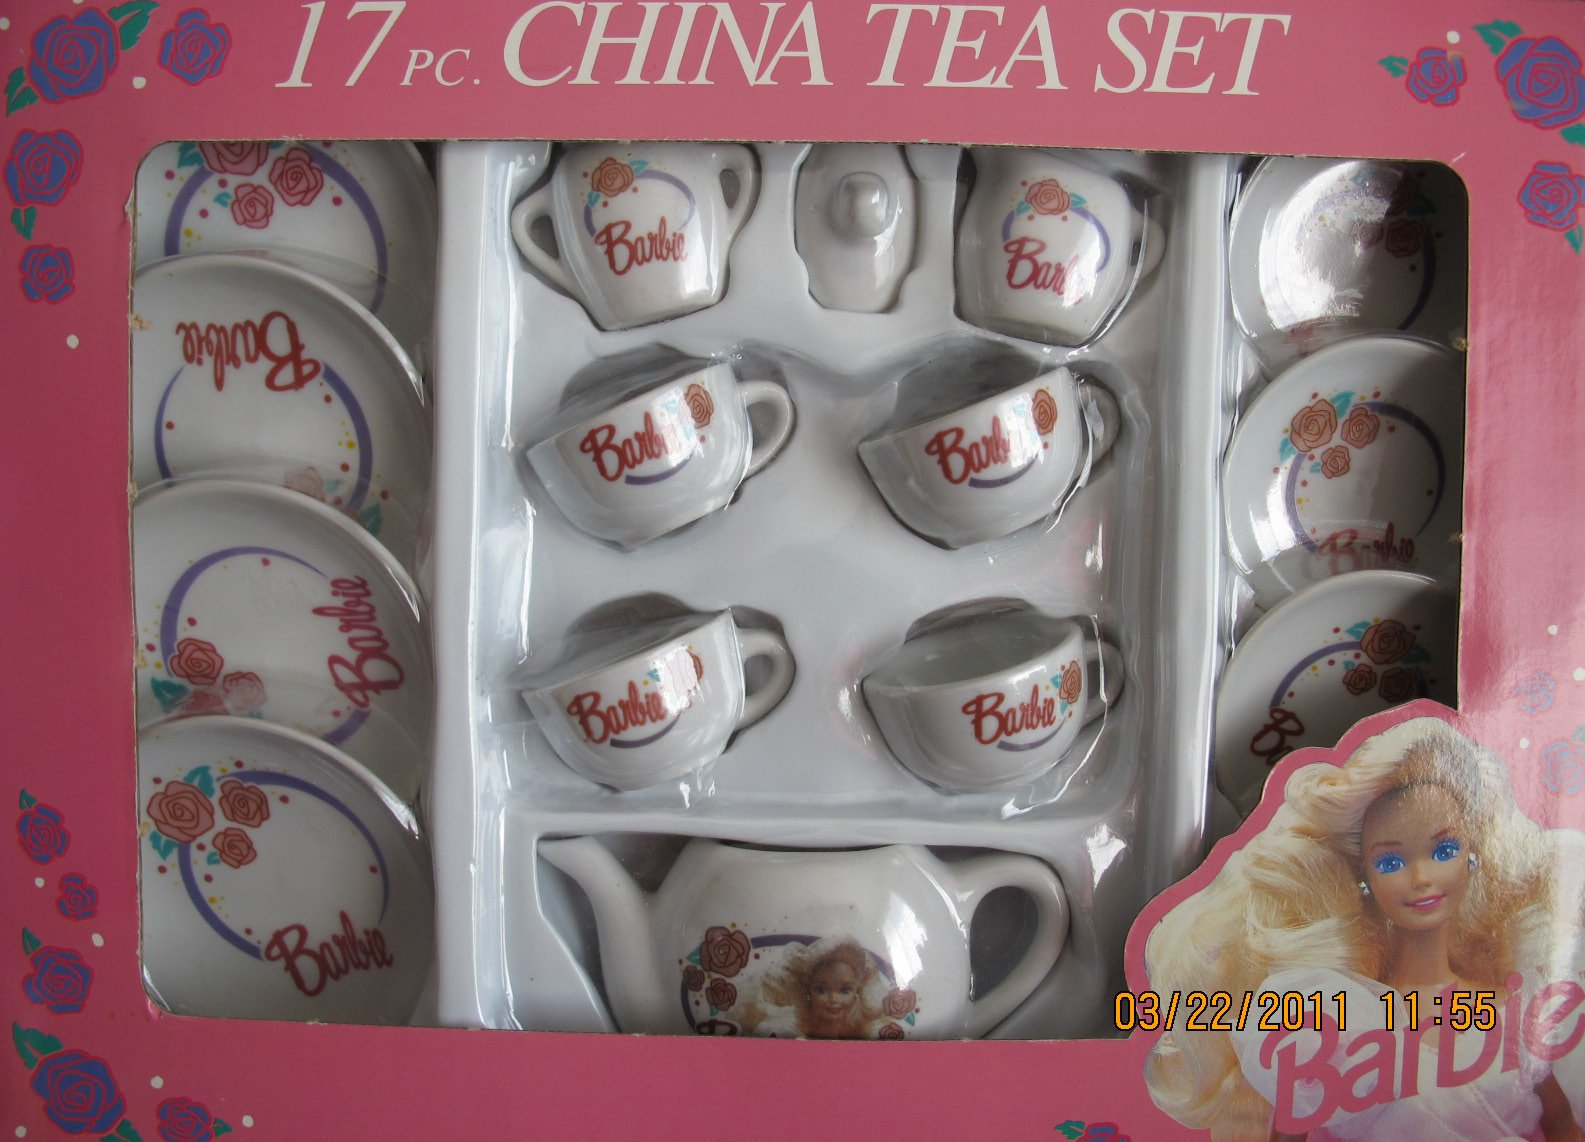 Barbie 17 Piece CHINA TEA SET - Child Size Set w Tea Pot, Cups, Saucers, Plates & More (1992)